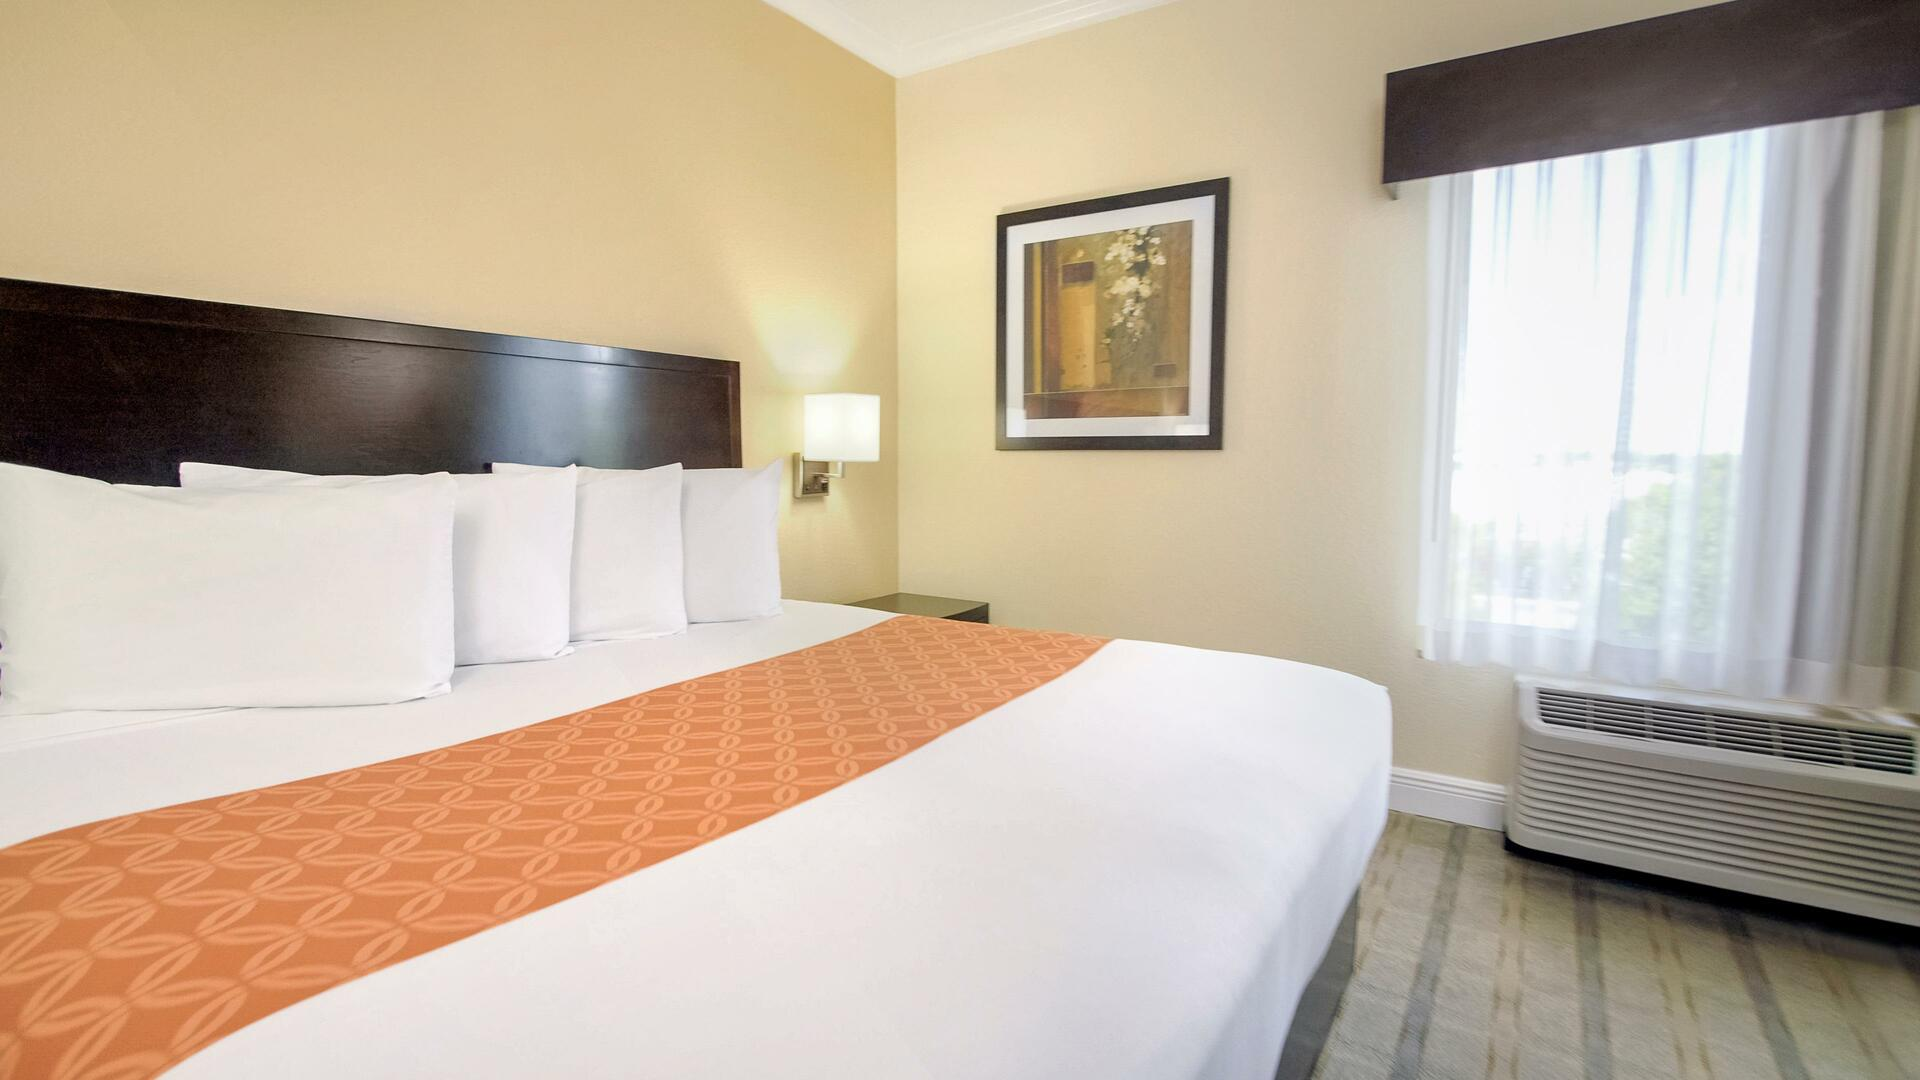 King bed accessible room with plush pillows and windo